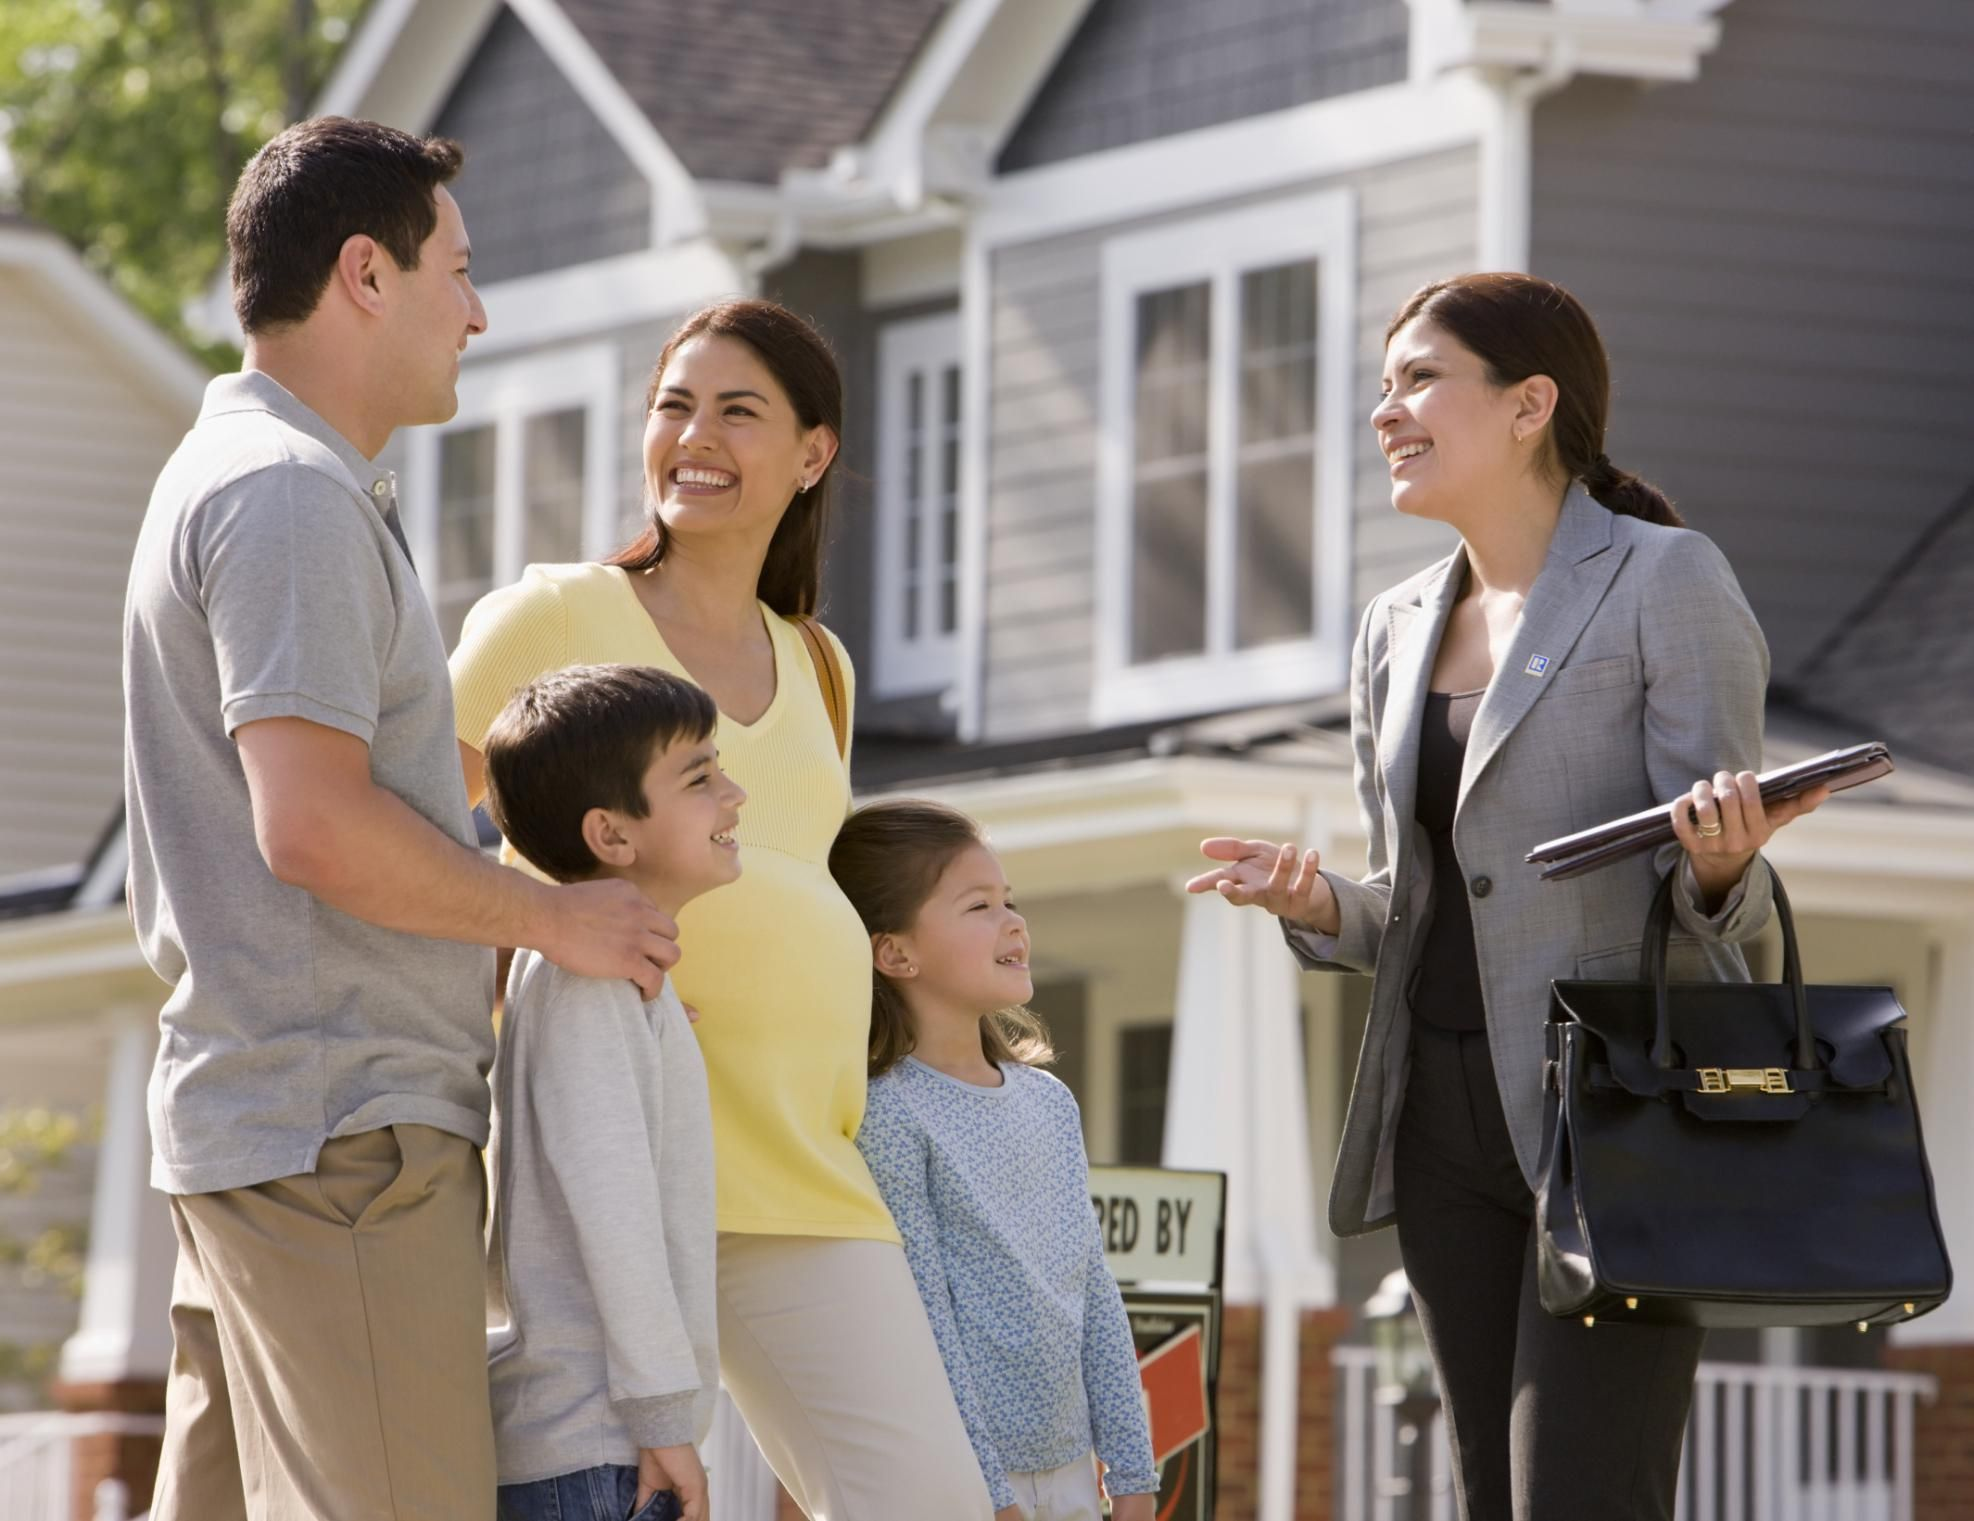 A family and property agent smiling in front of home